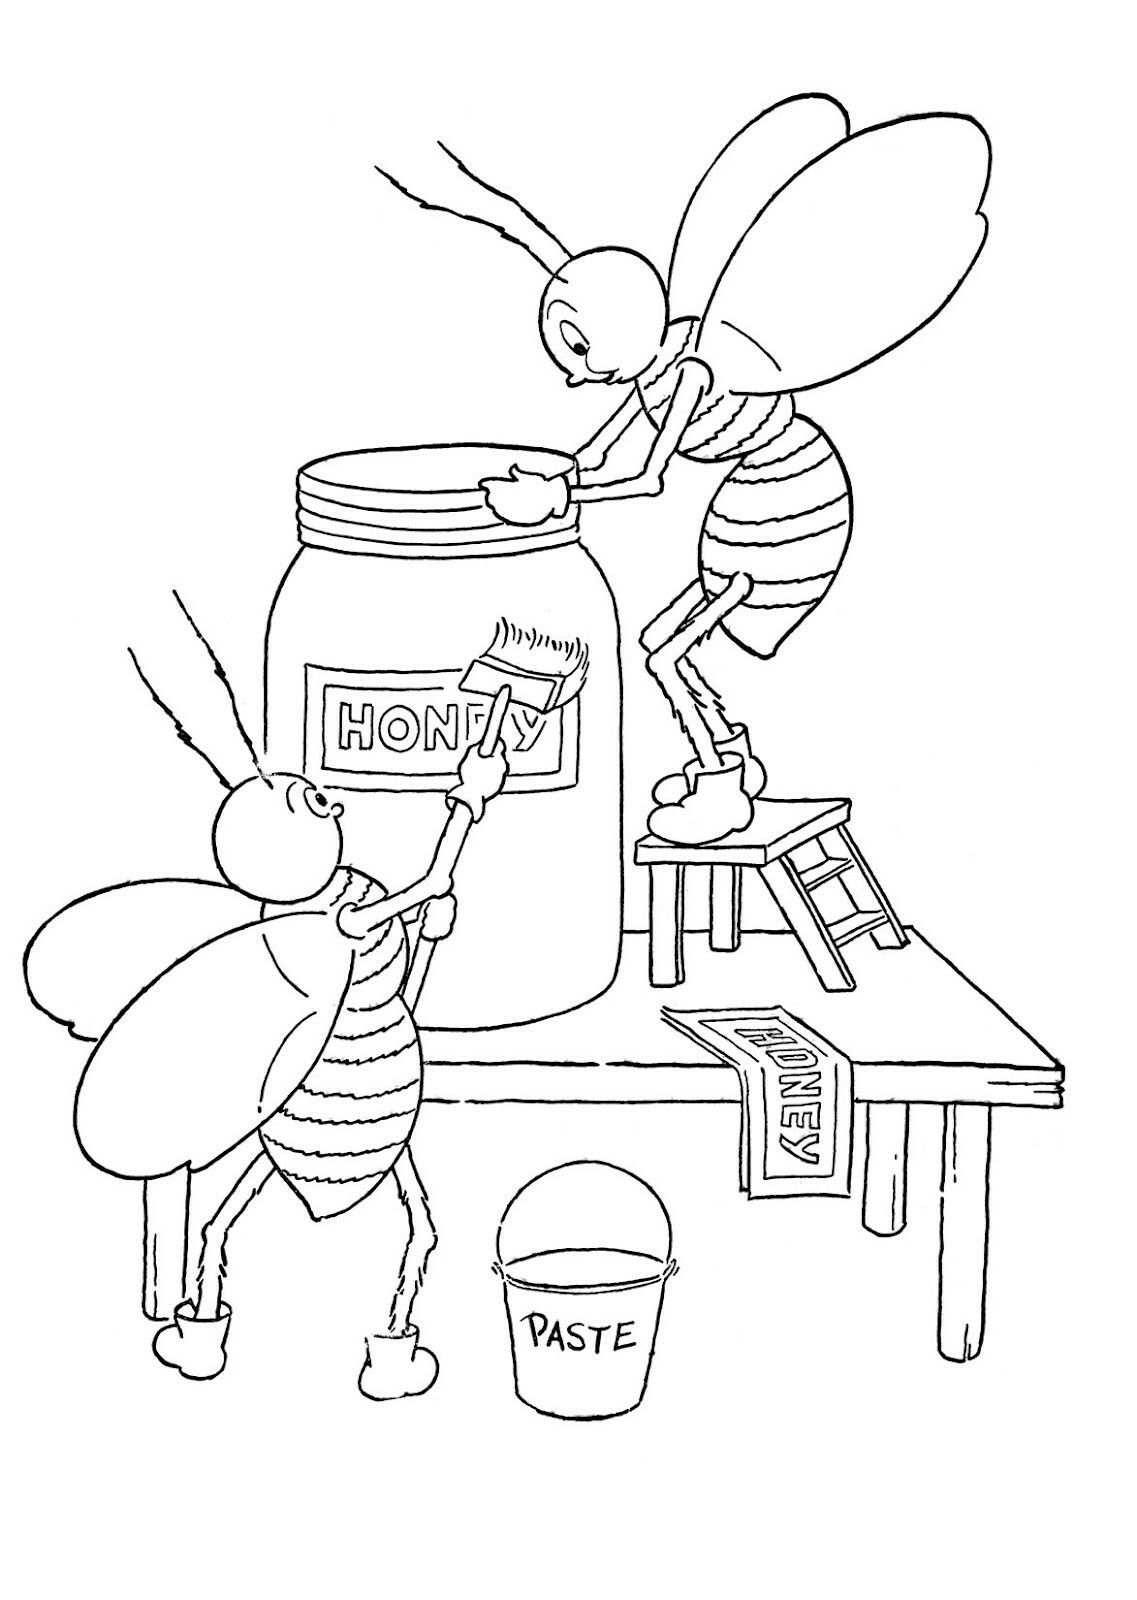 Cute Honey Bee Coloring Page | coloring pages | Pinterest | Abeja